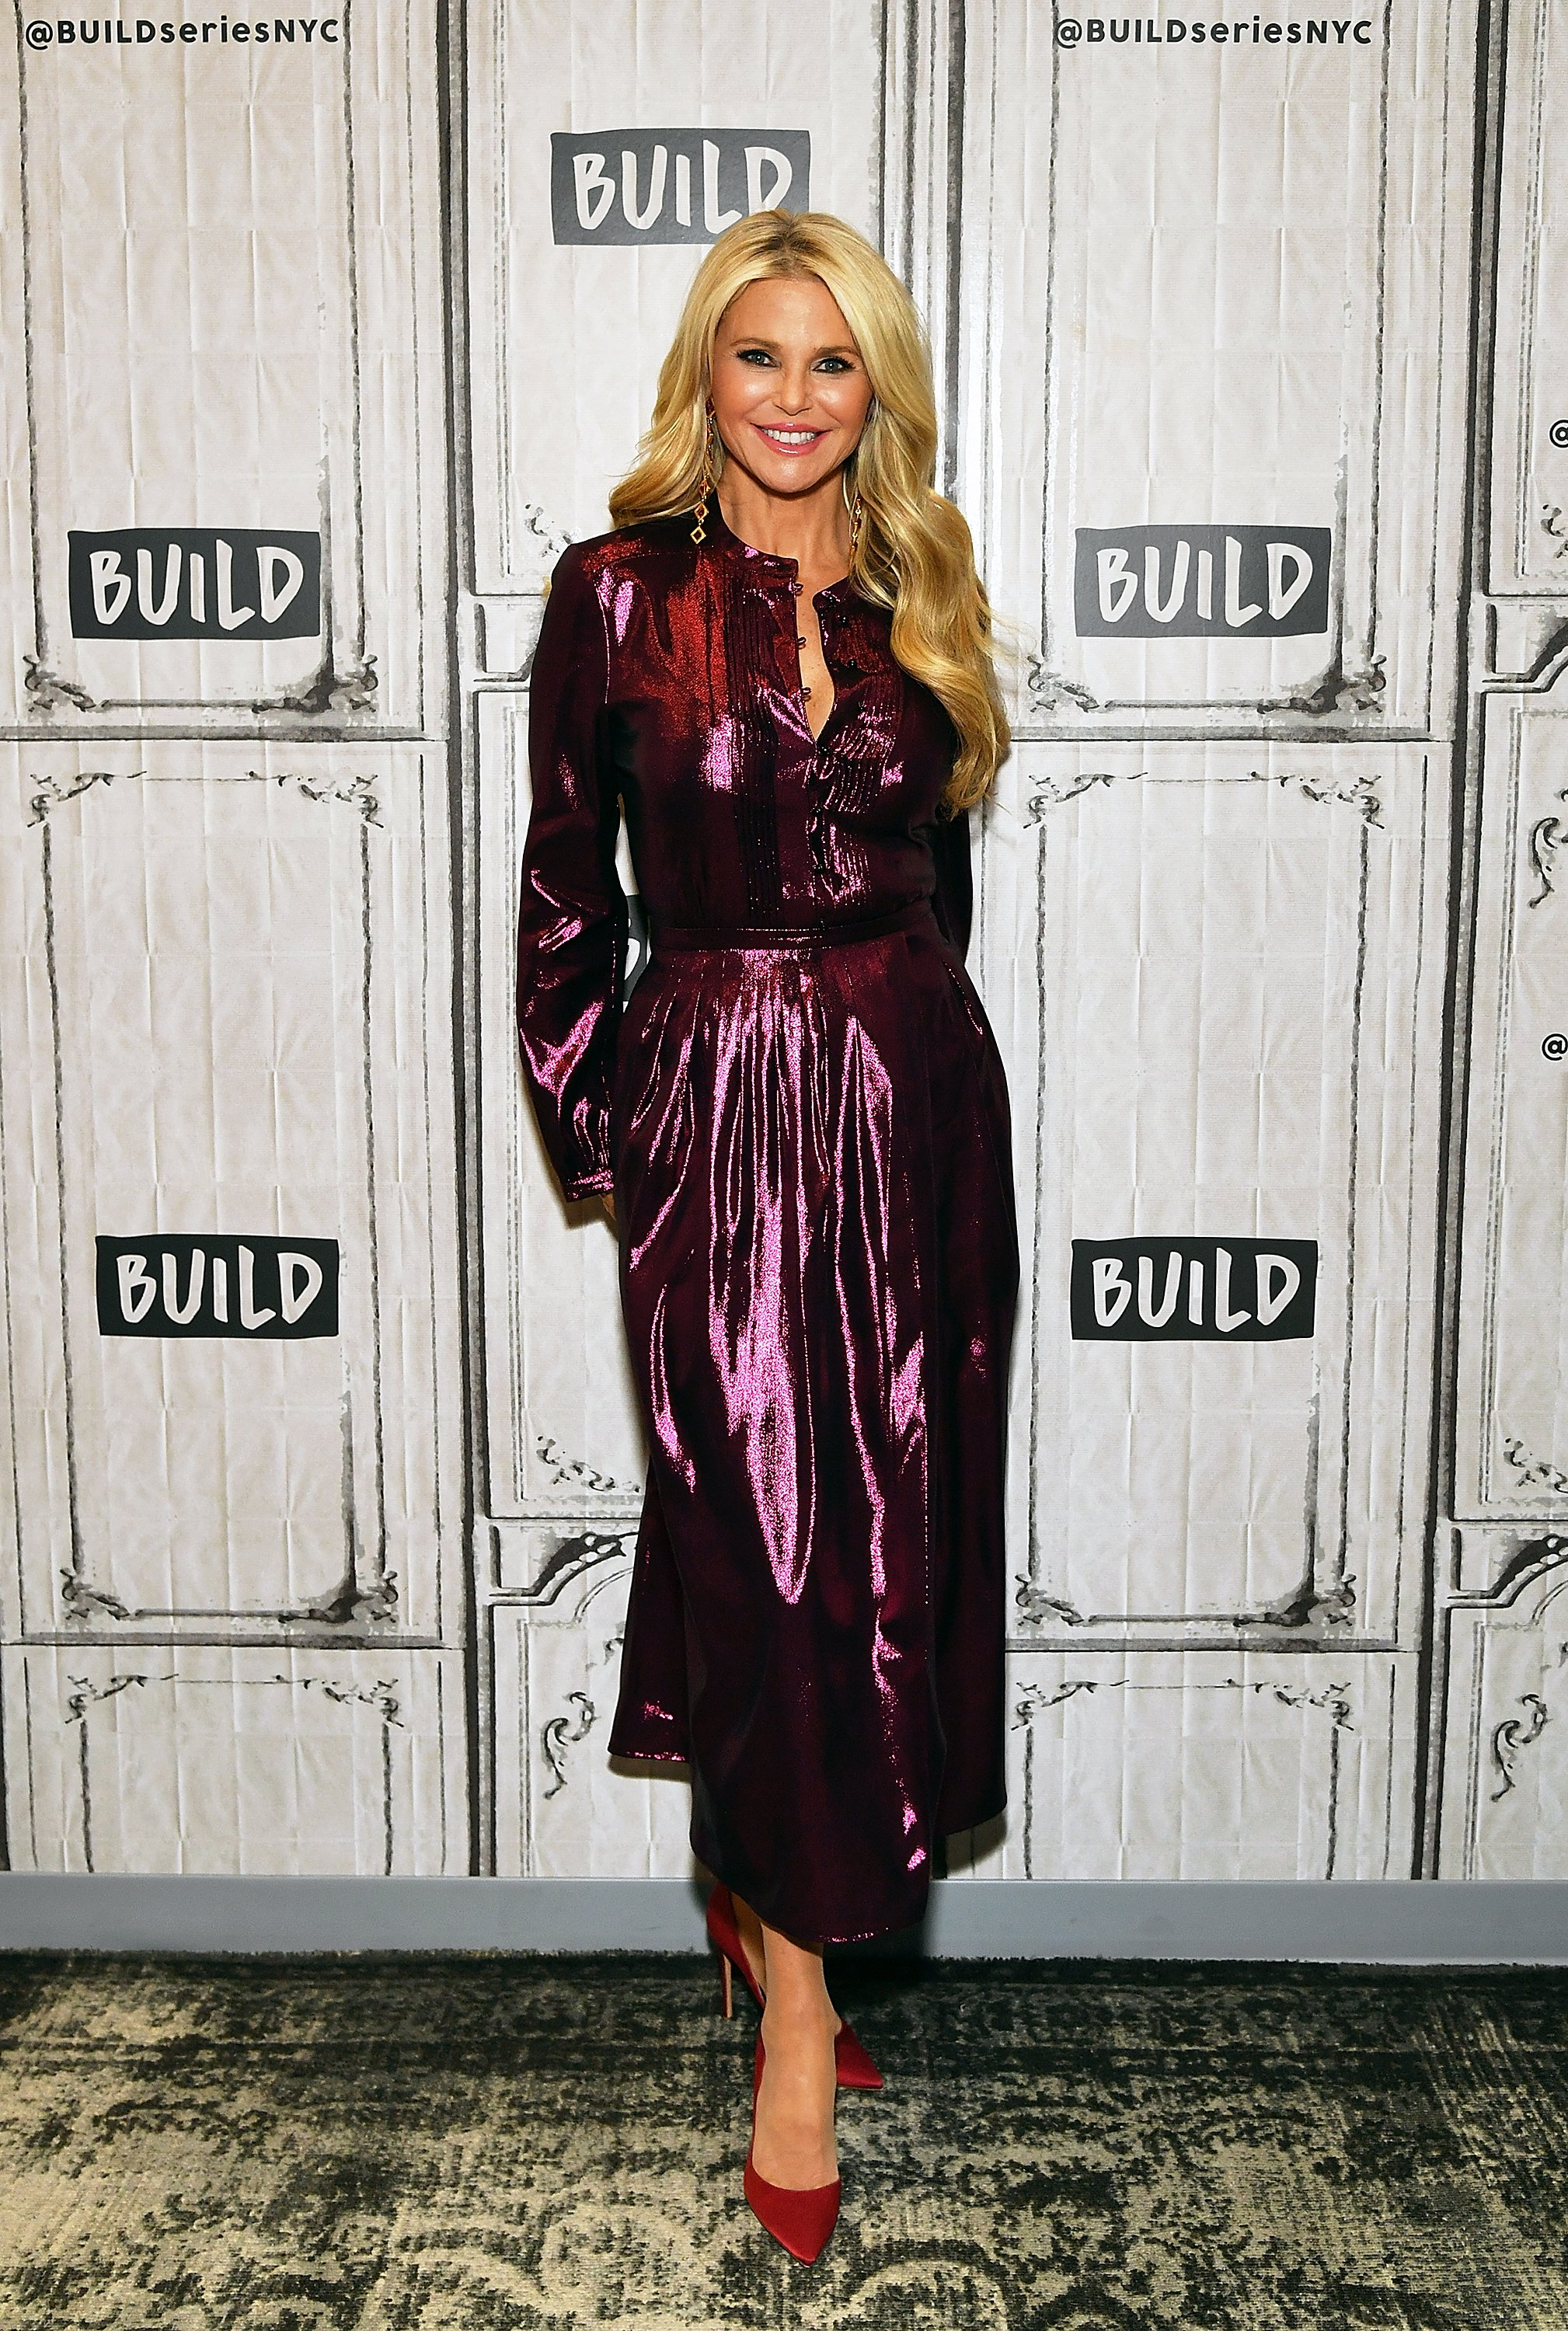 "Image Credits: Getty Images / Slaven Vlasic | Model/actress Christie Brinkley visits Build Series to discuss ""Milestones of Me"" campaign to encourage women to celebrate life's milestones at Build Studio on January 29, 2019 in New York City."